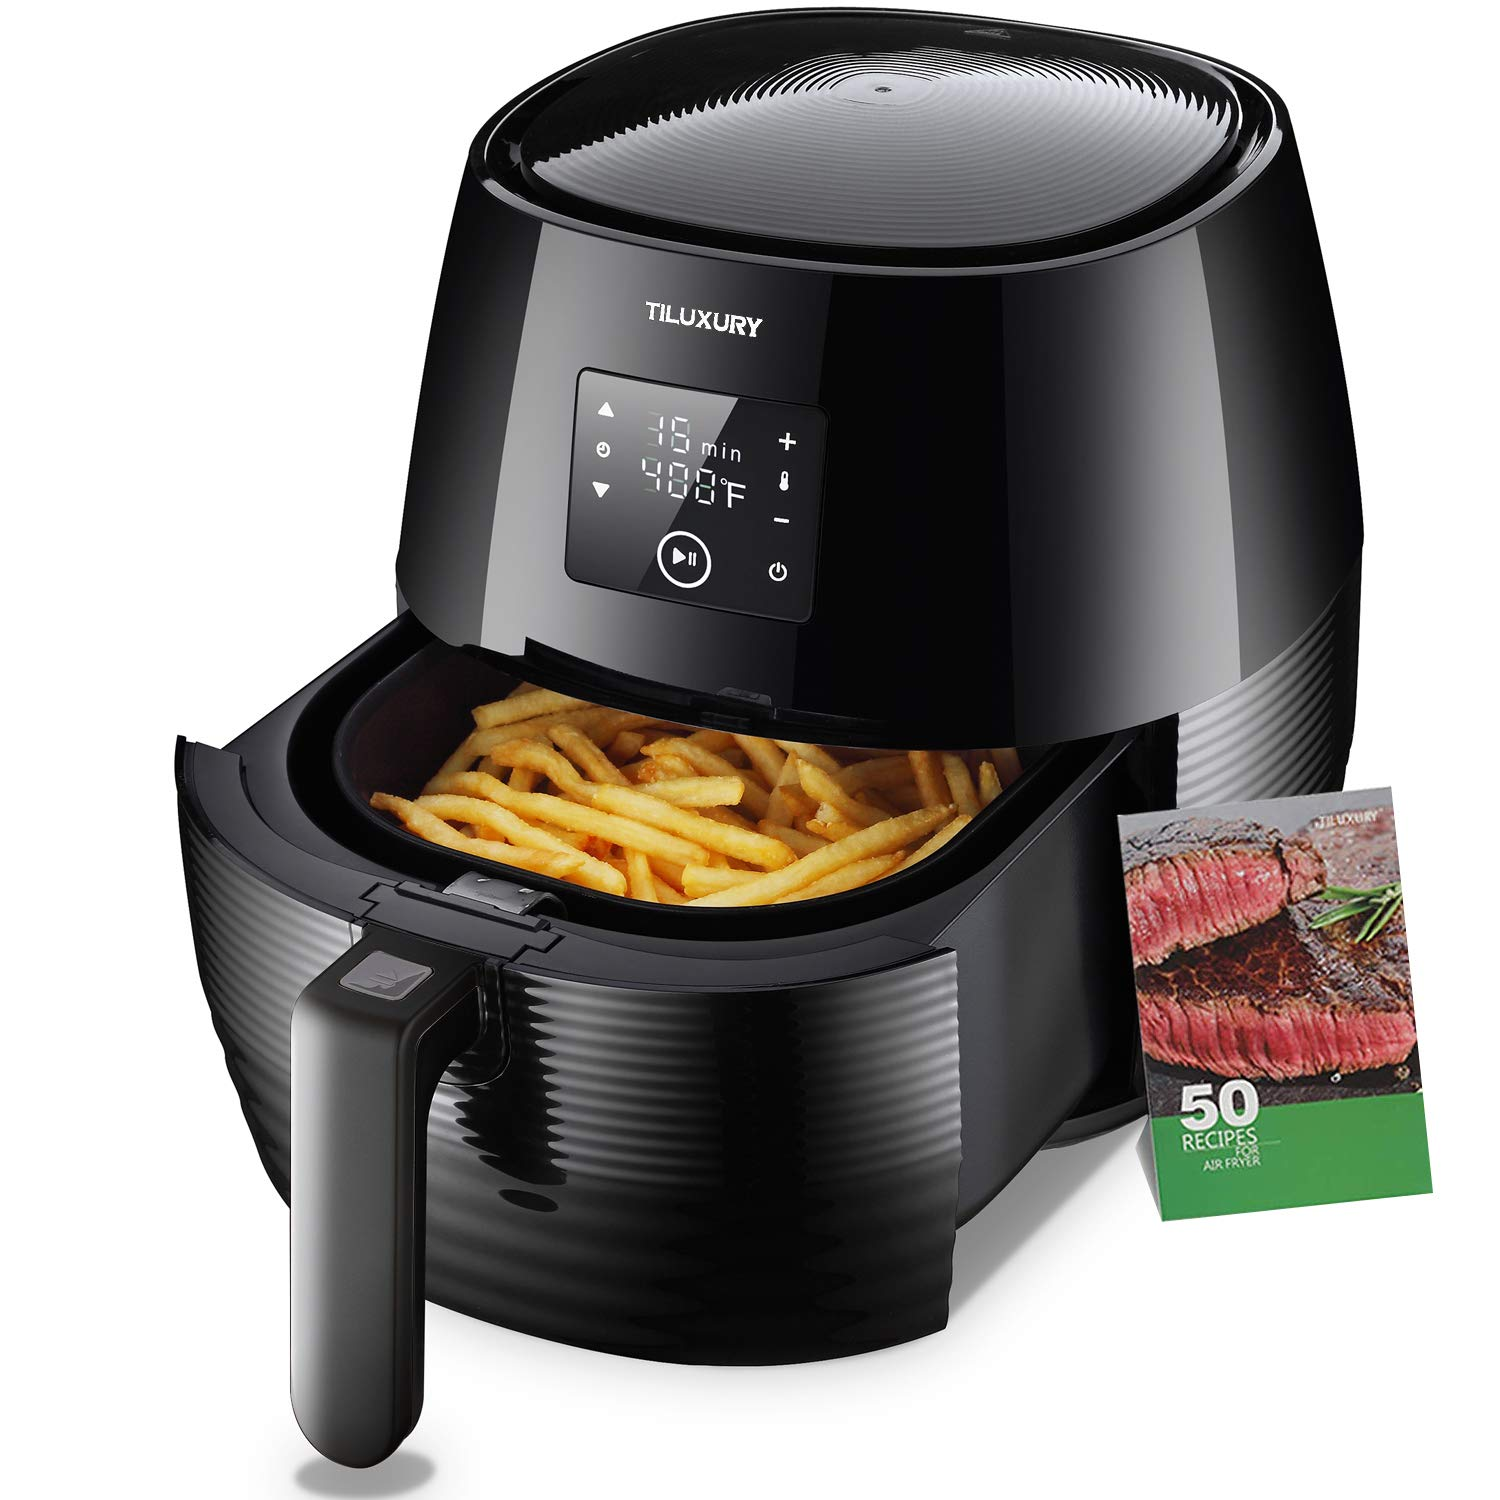 US PIEDLE Air Fryer, 3.7Qt Electric Hot Airfryer Oven Oilless Cooker with Detachable Nonstick Basket, LCD Touch Screen, Dishwasher Safe, Auto Shut Off, W 50 Recipes, 1400W